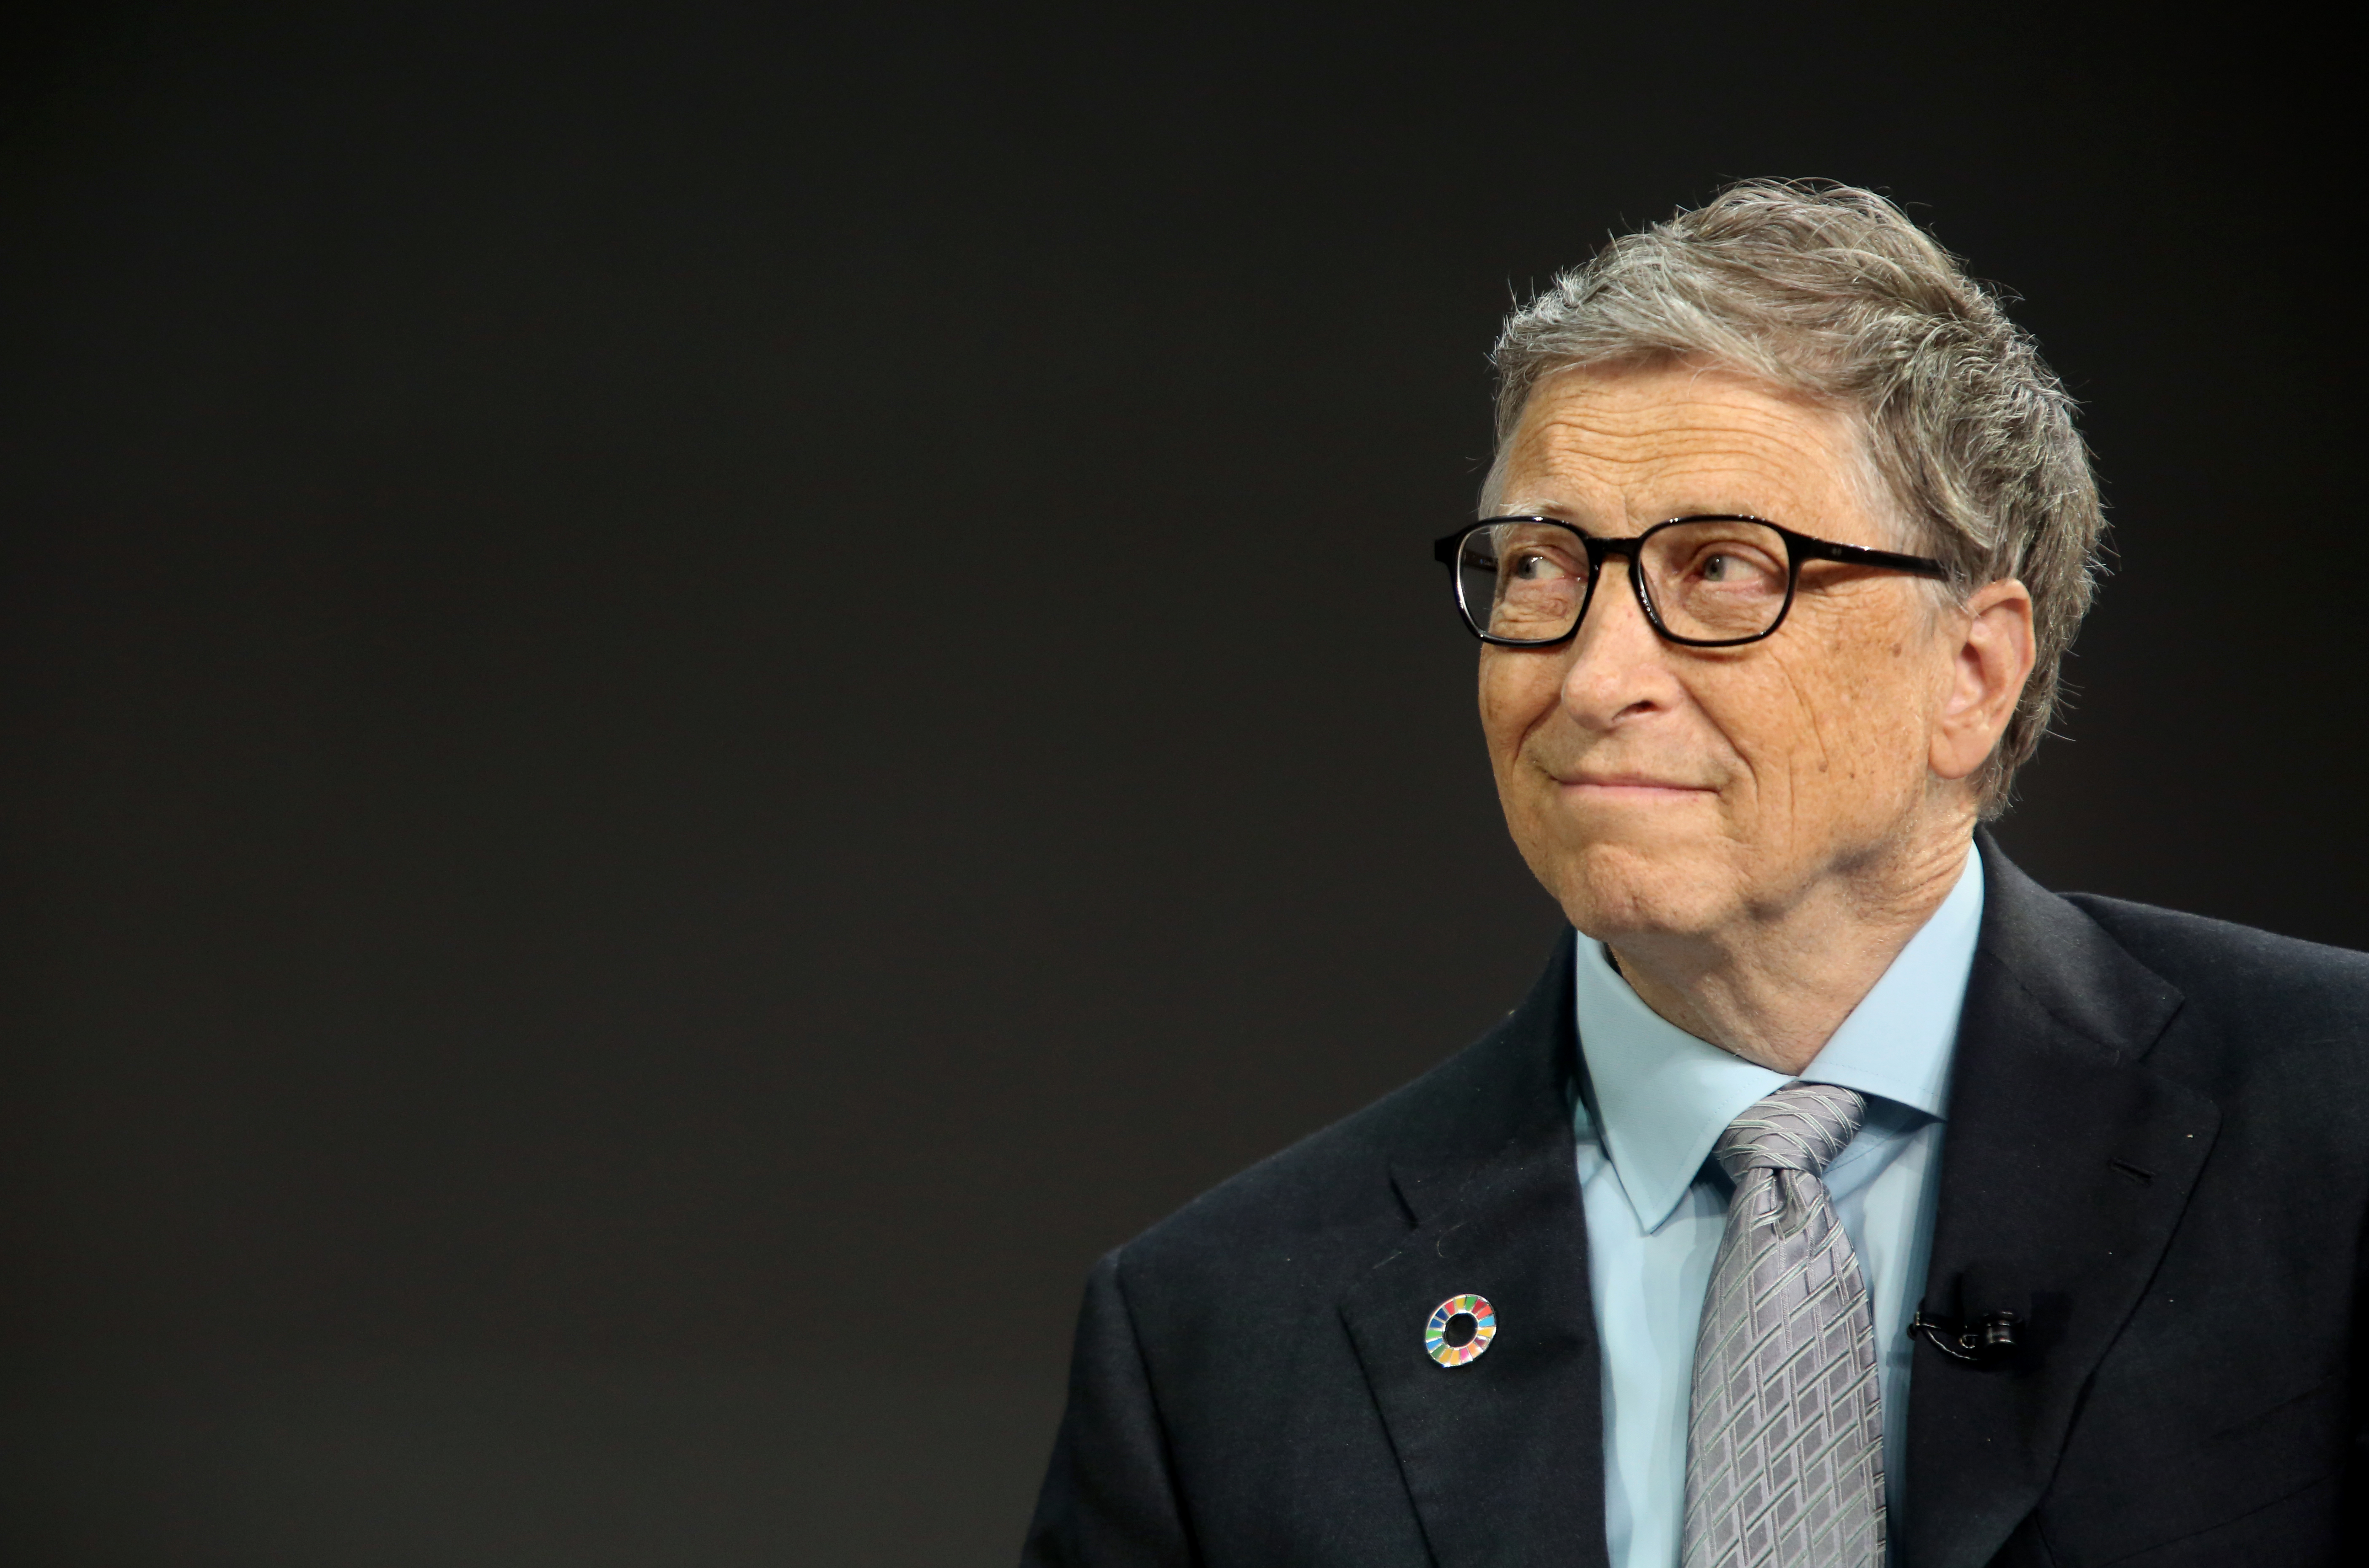 Bill Gates listens to former U.S. President Barack Obama answer questions at the Gates Foundation Inaugural Goalkeepers event on September 20, 2017 in New York City